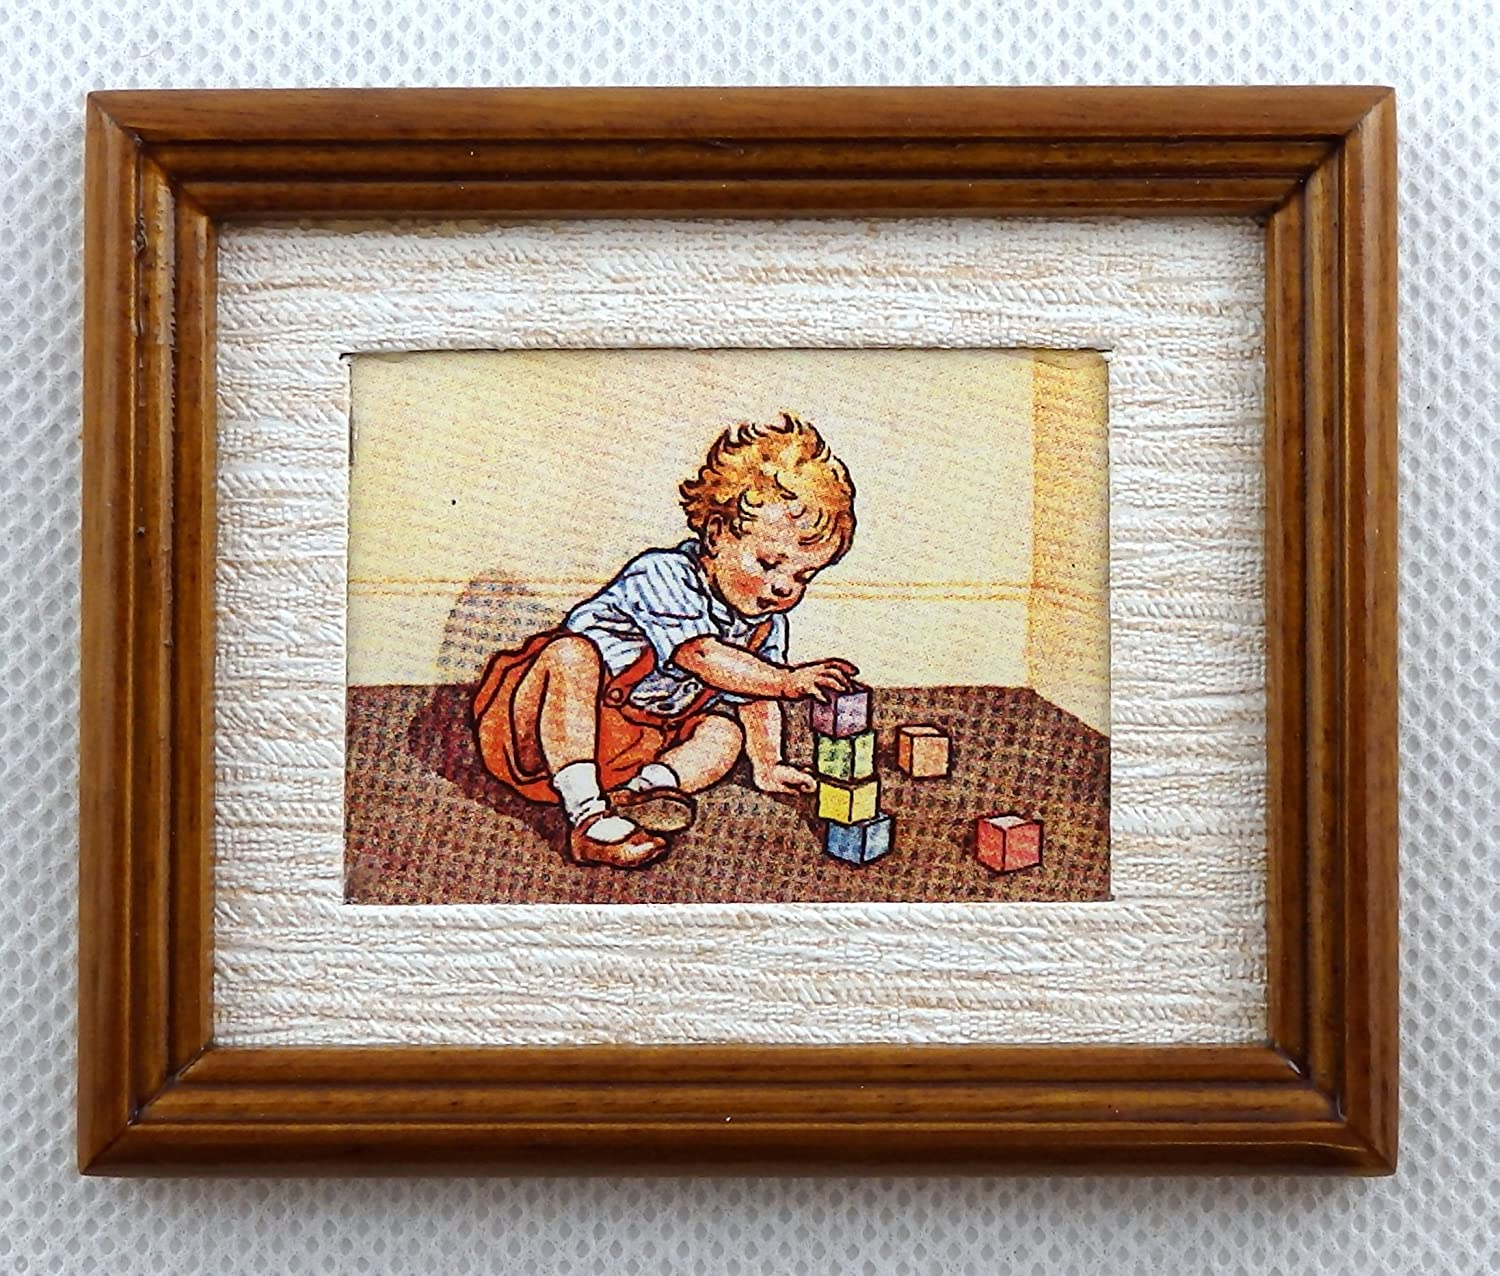 Melody Jane Dolls Houses Learning to Build Picture Painting Walnut Frame Miniature Accessory